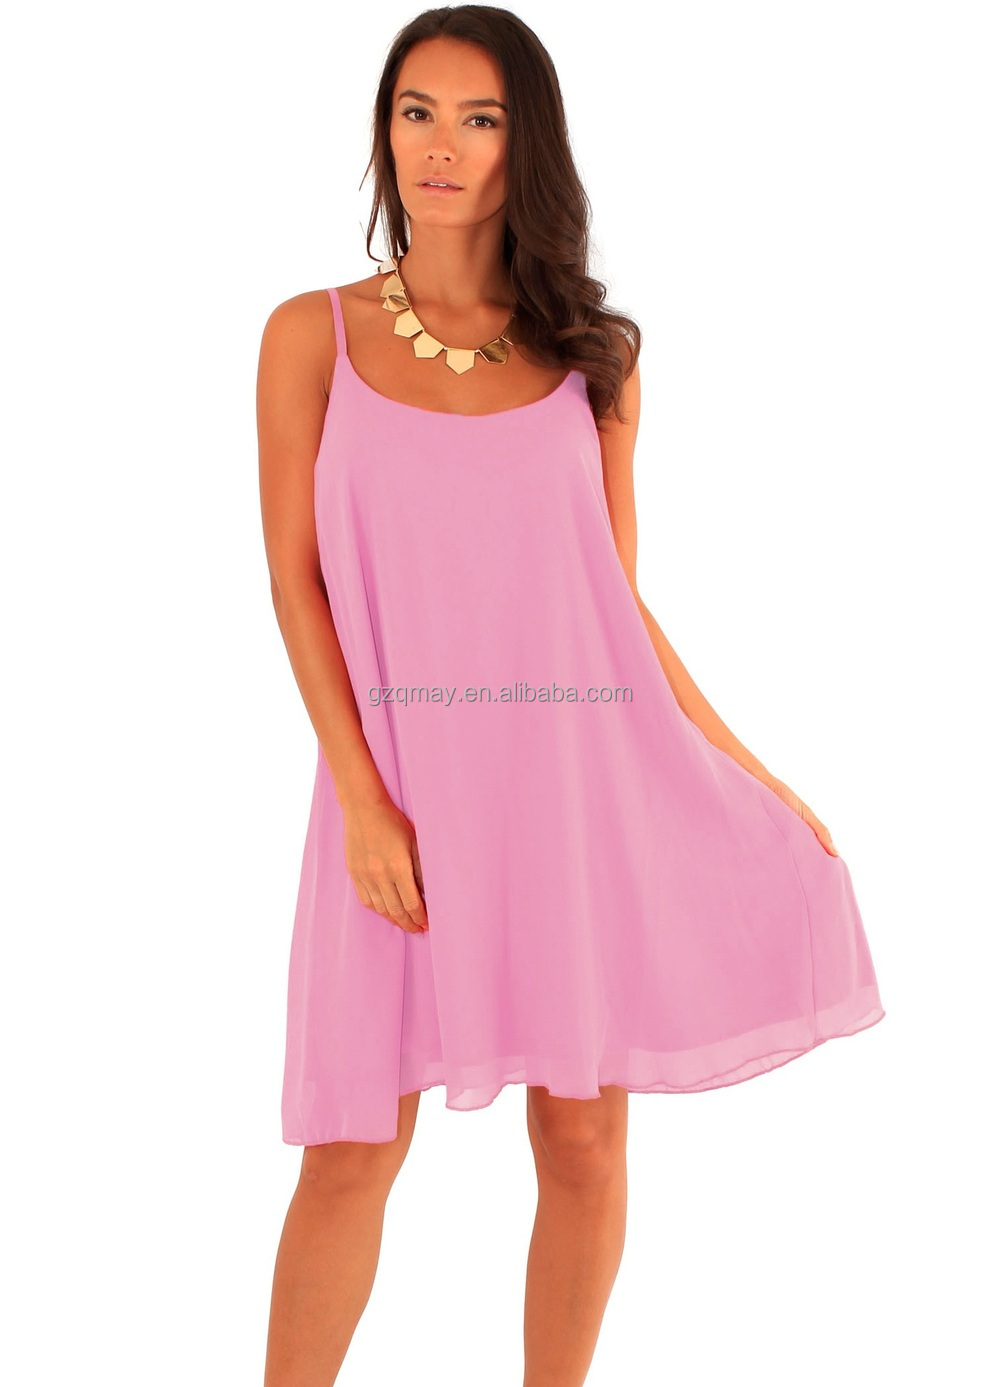 Cheap Cotton Summer Dresses